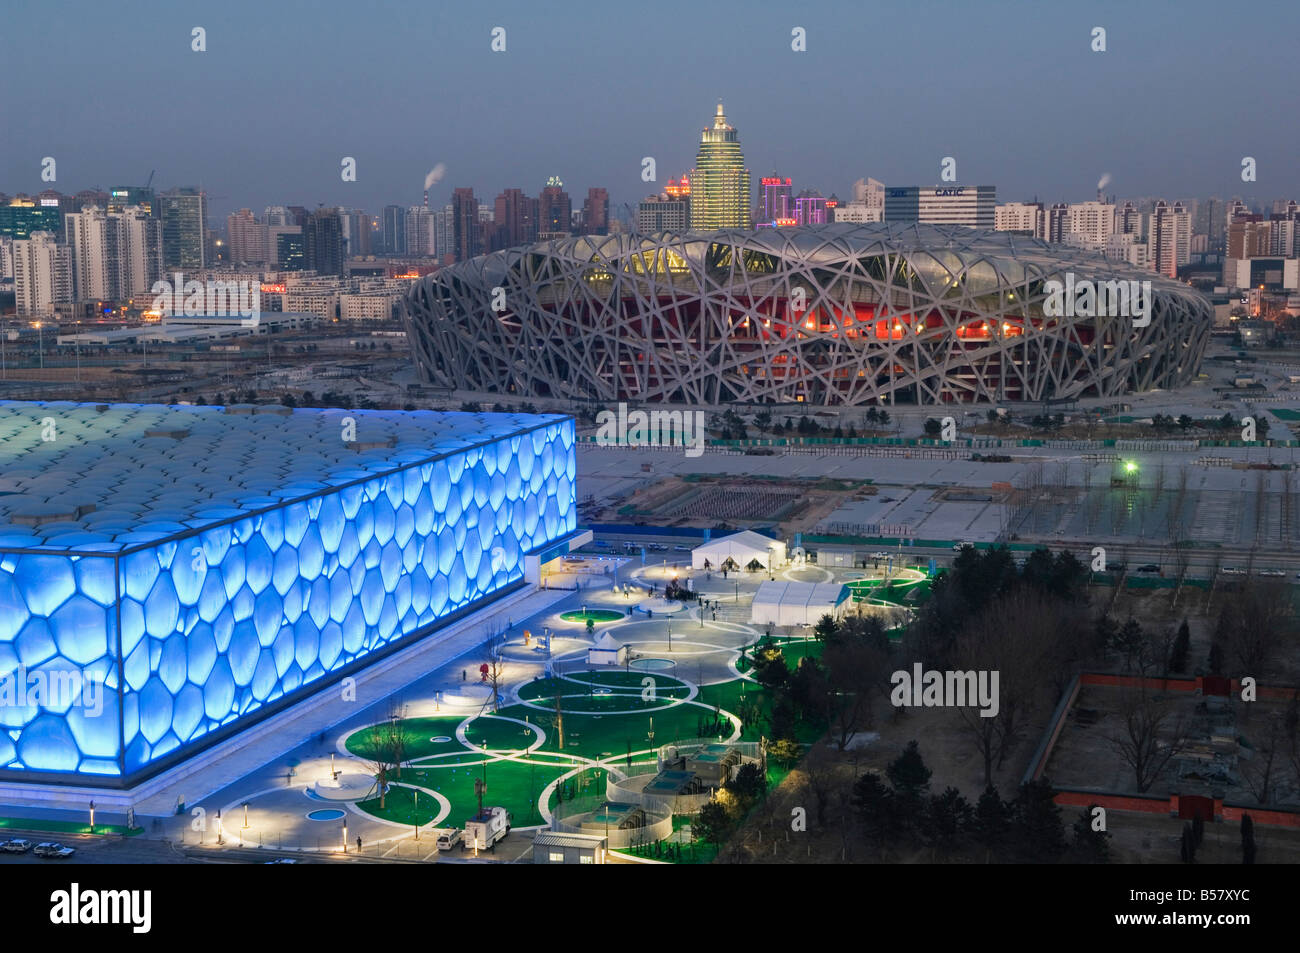 The Water Cube National Aquatics Center swimming arena and National Stadium at the Olympic Park, Beijing, China, - Stock Image